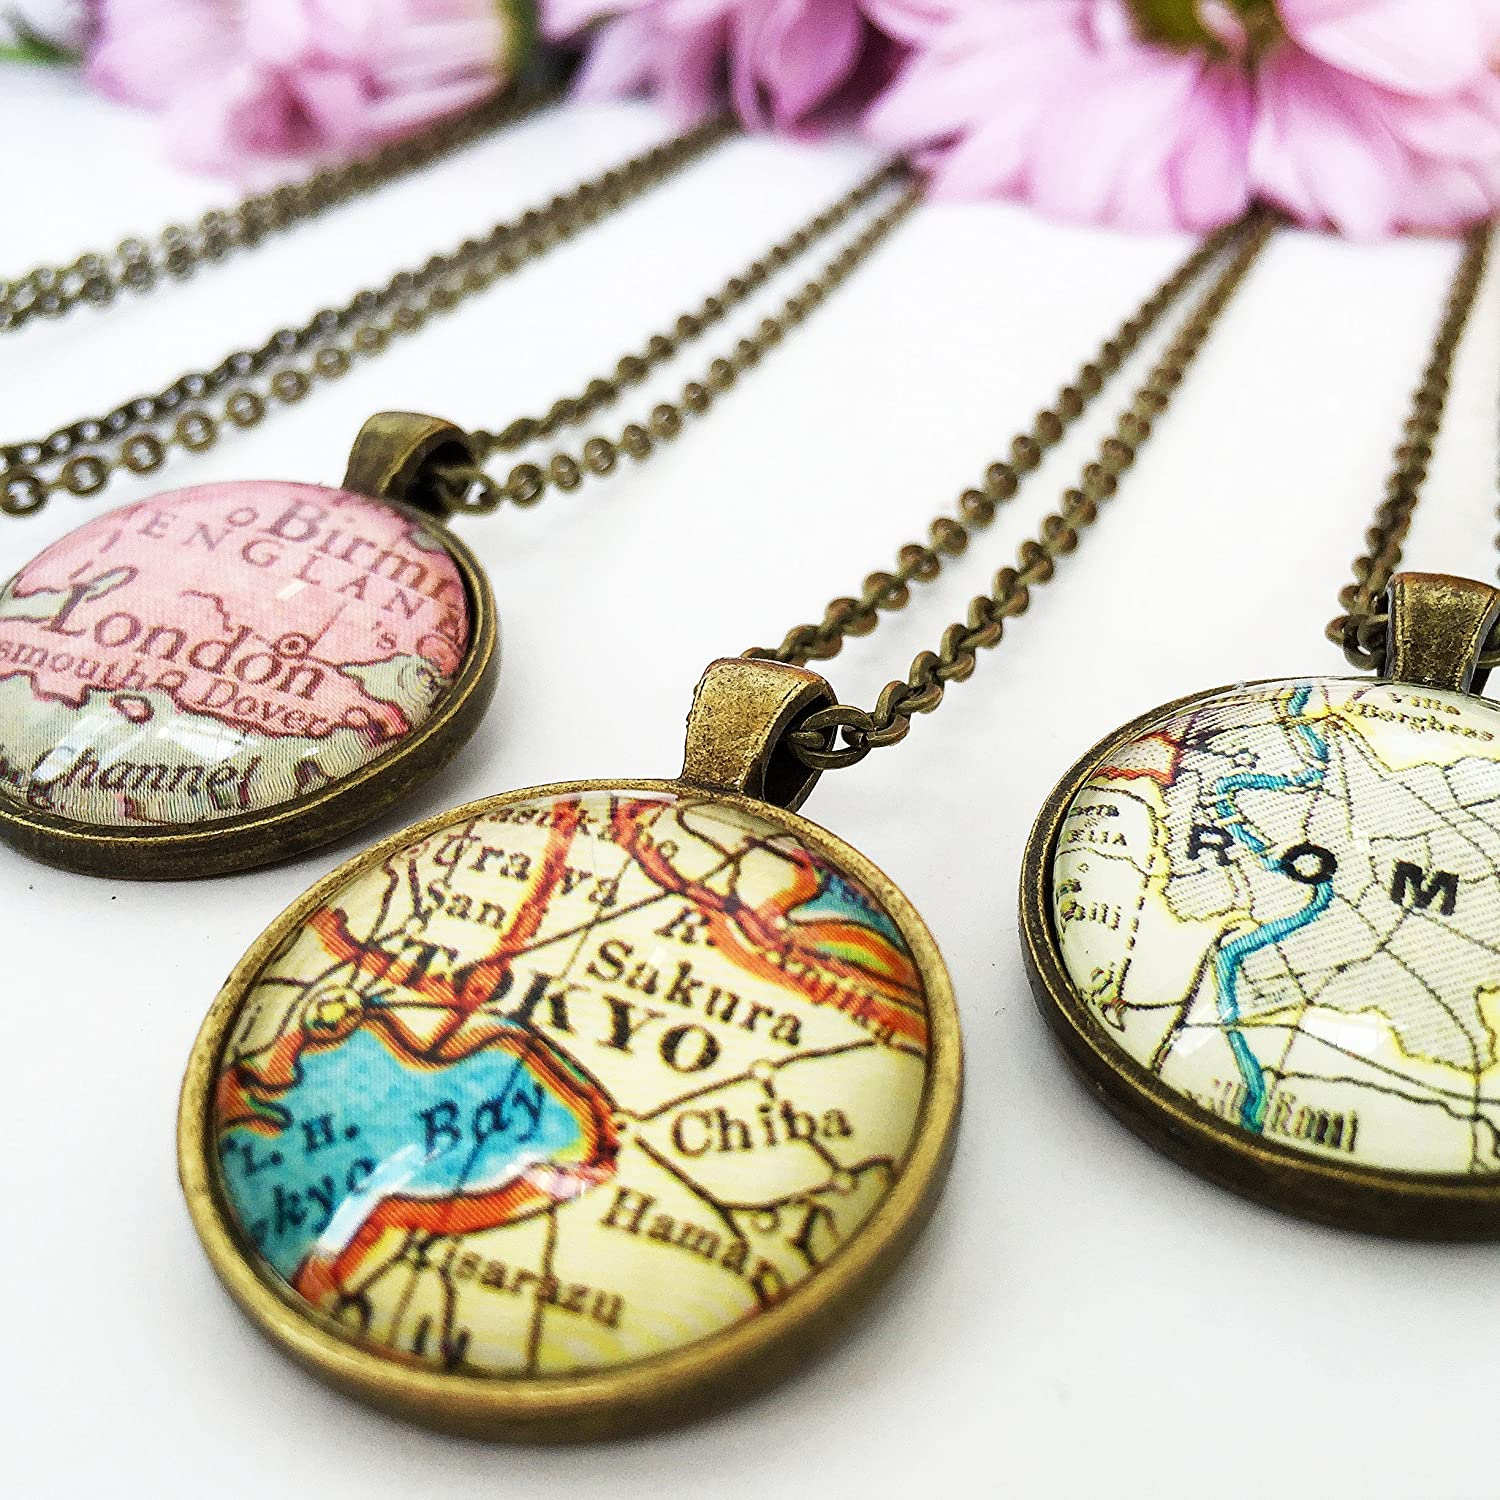 Custom jewelry available. Paper Towns Vintage Massachusetts Map Pendant Necklace by Massachusett necklace handmade from an 1953 vintage map Map necklace includes adjustable chain and gift packaging